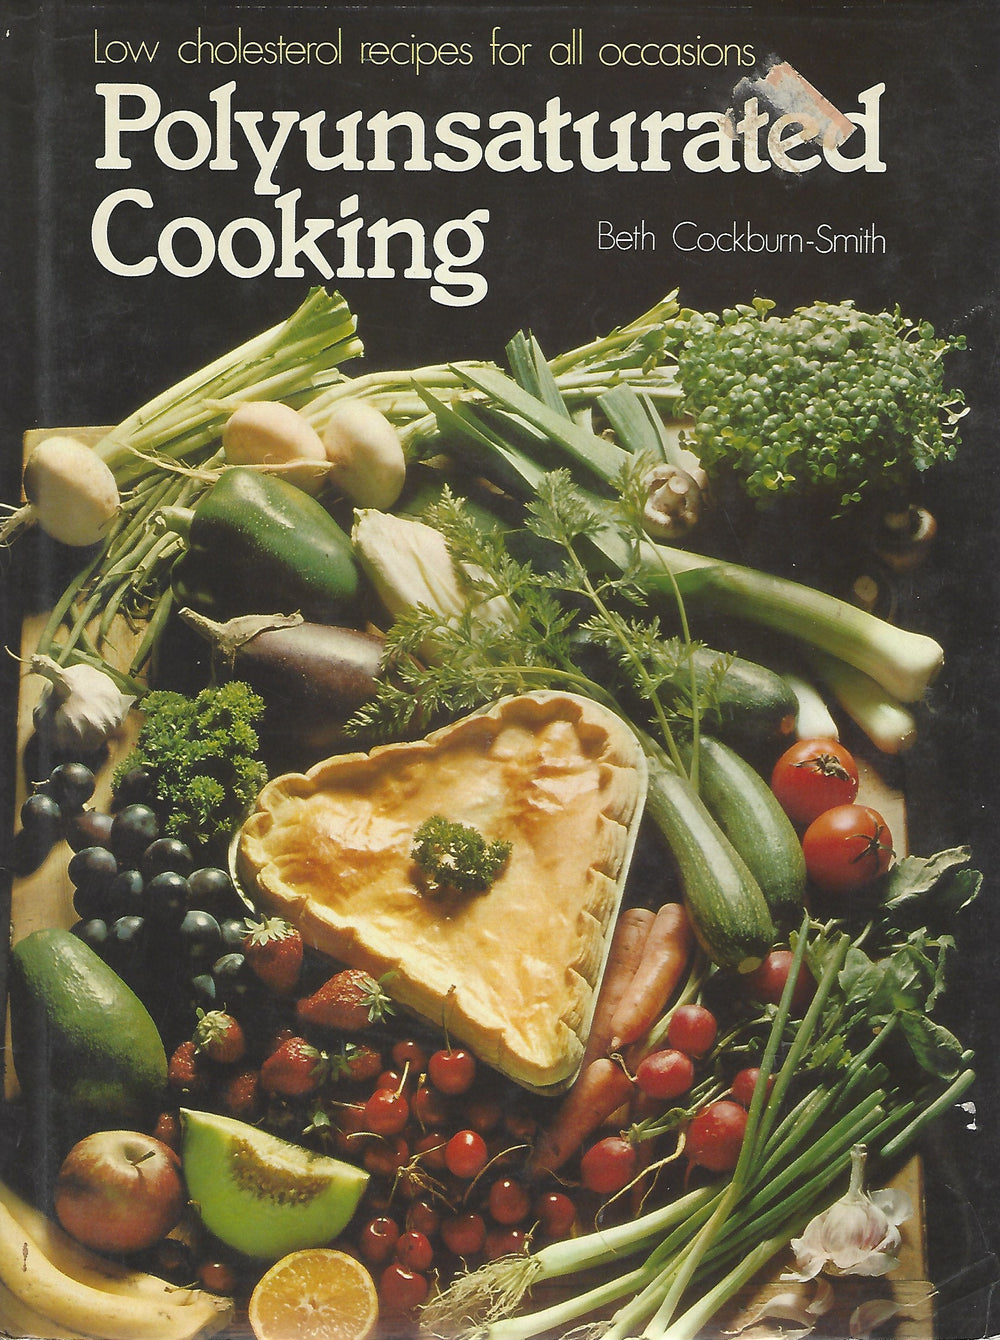 Polyunsaturated Cooking by Beth Cockburn-Smith  Hardcover (1978)